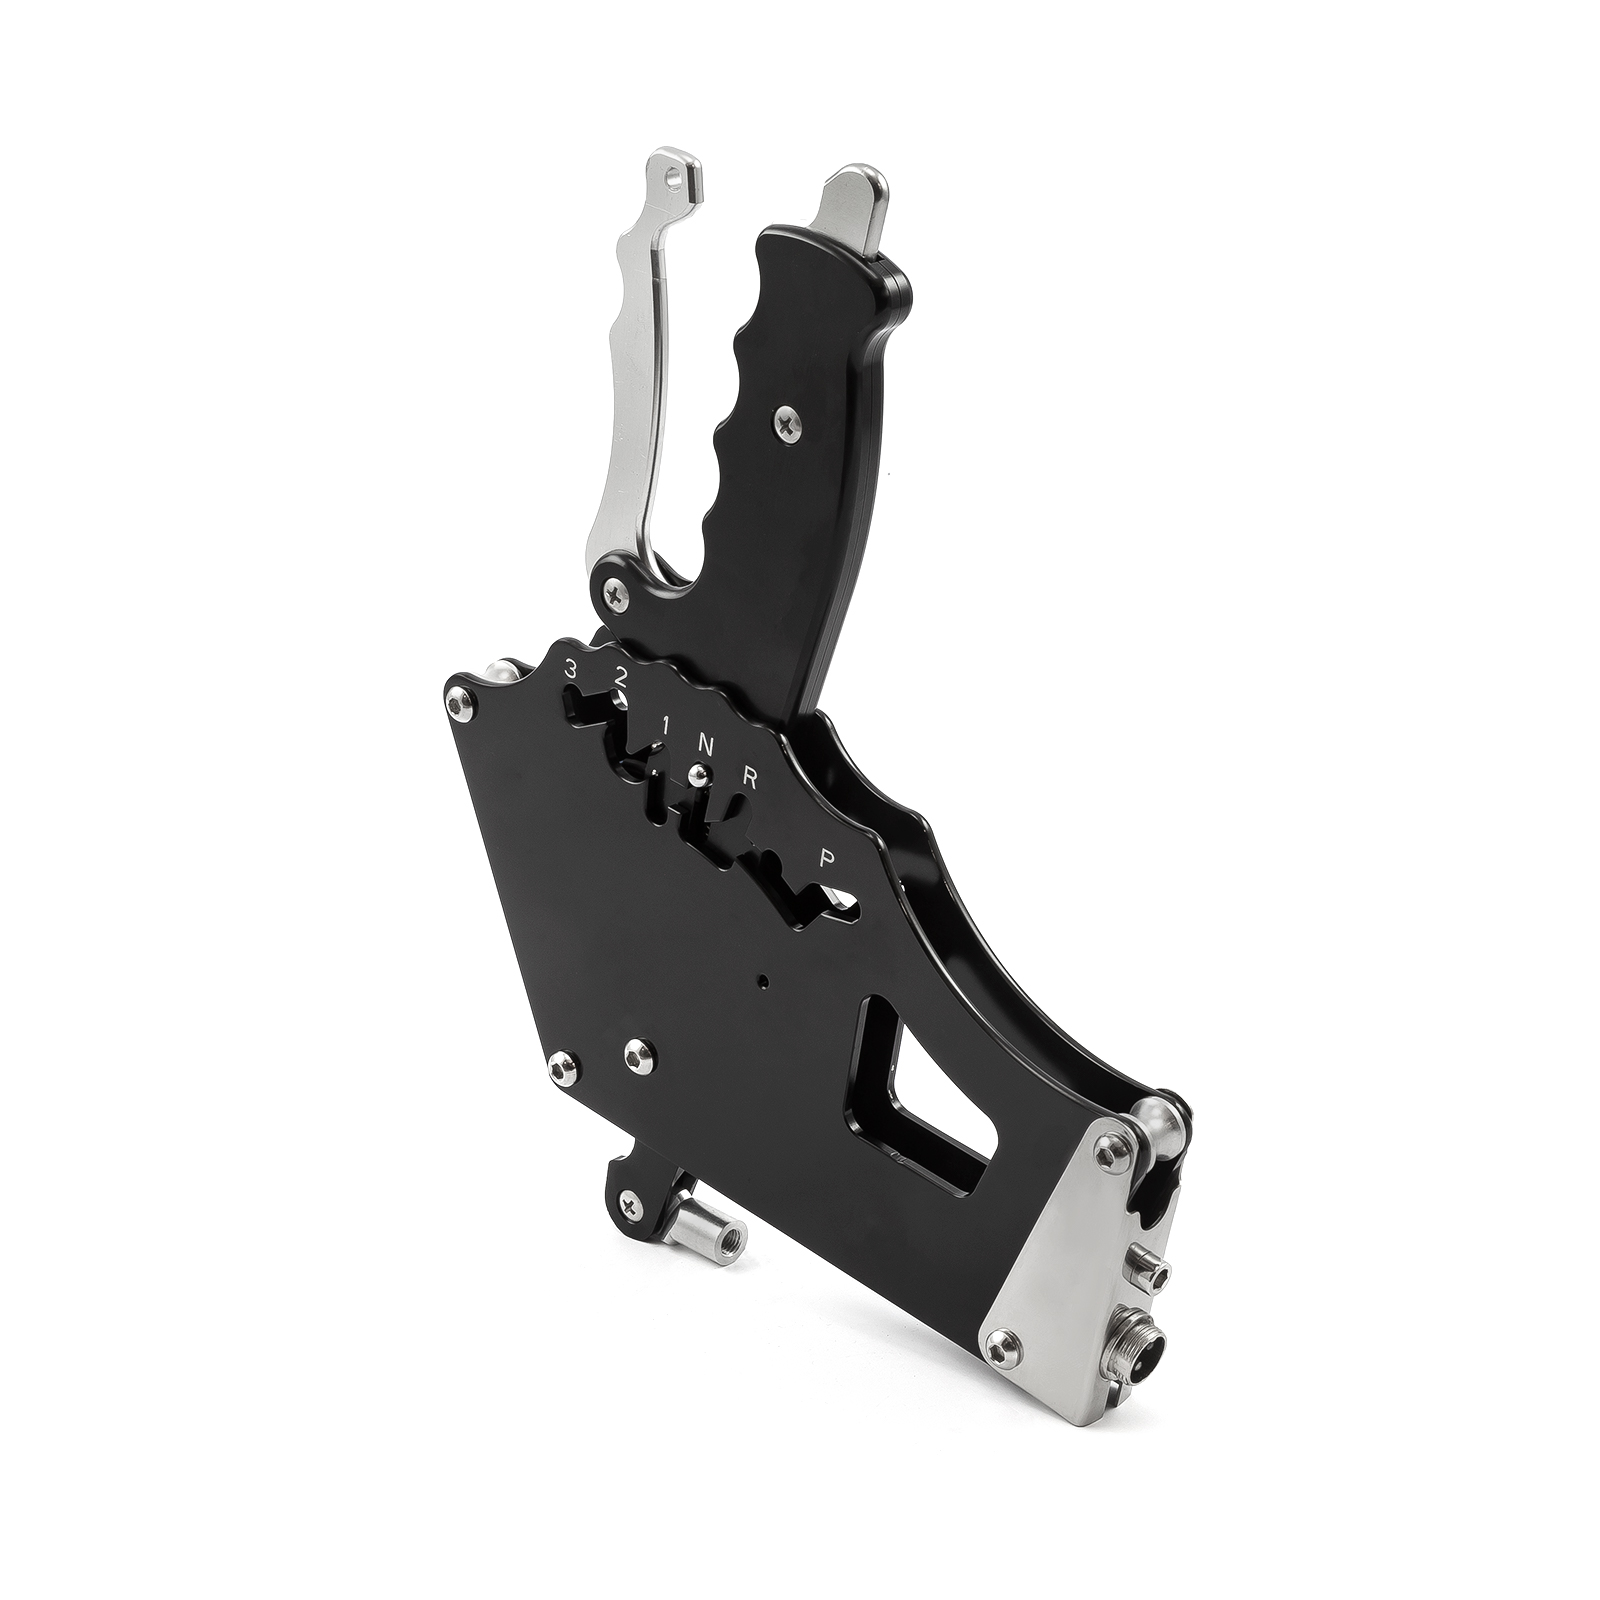 GM Turbo TH 200 350 400 Reverse Pattern Automatic Racing Shifter